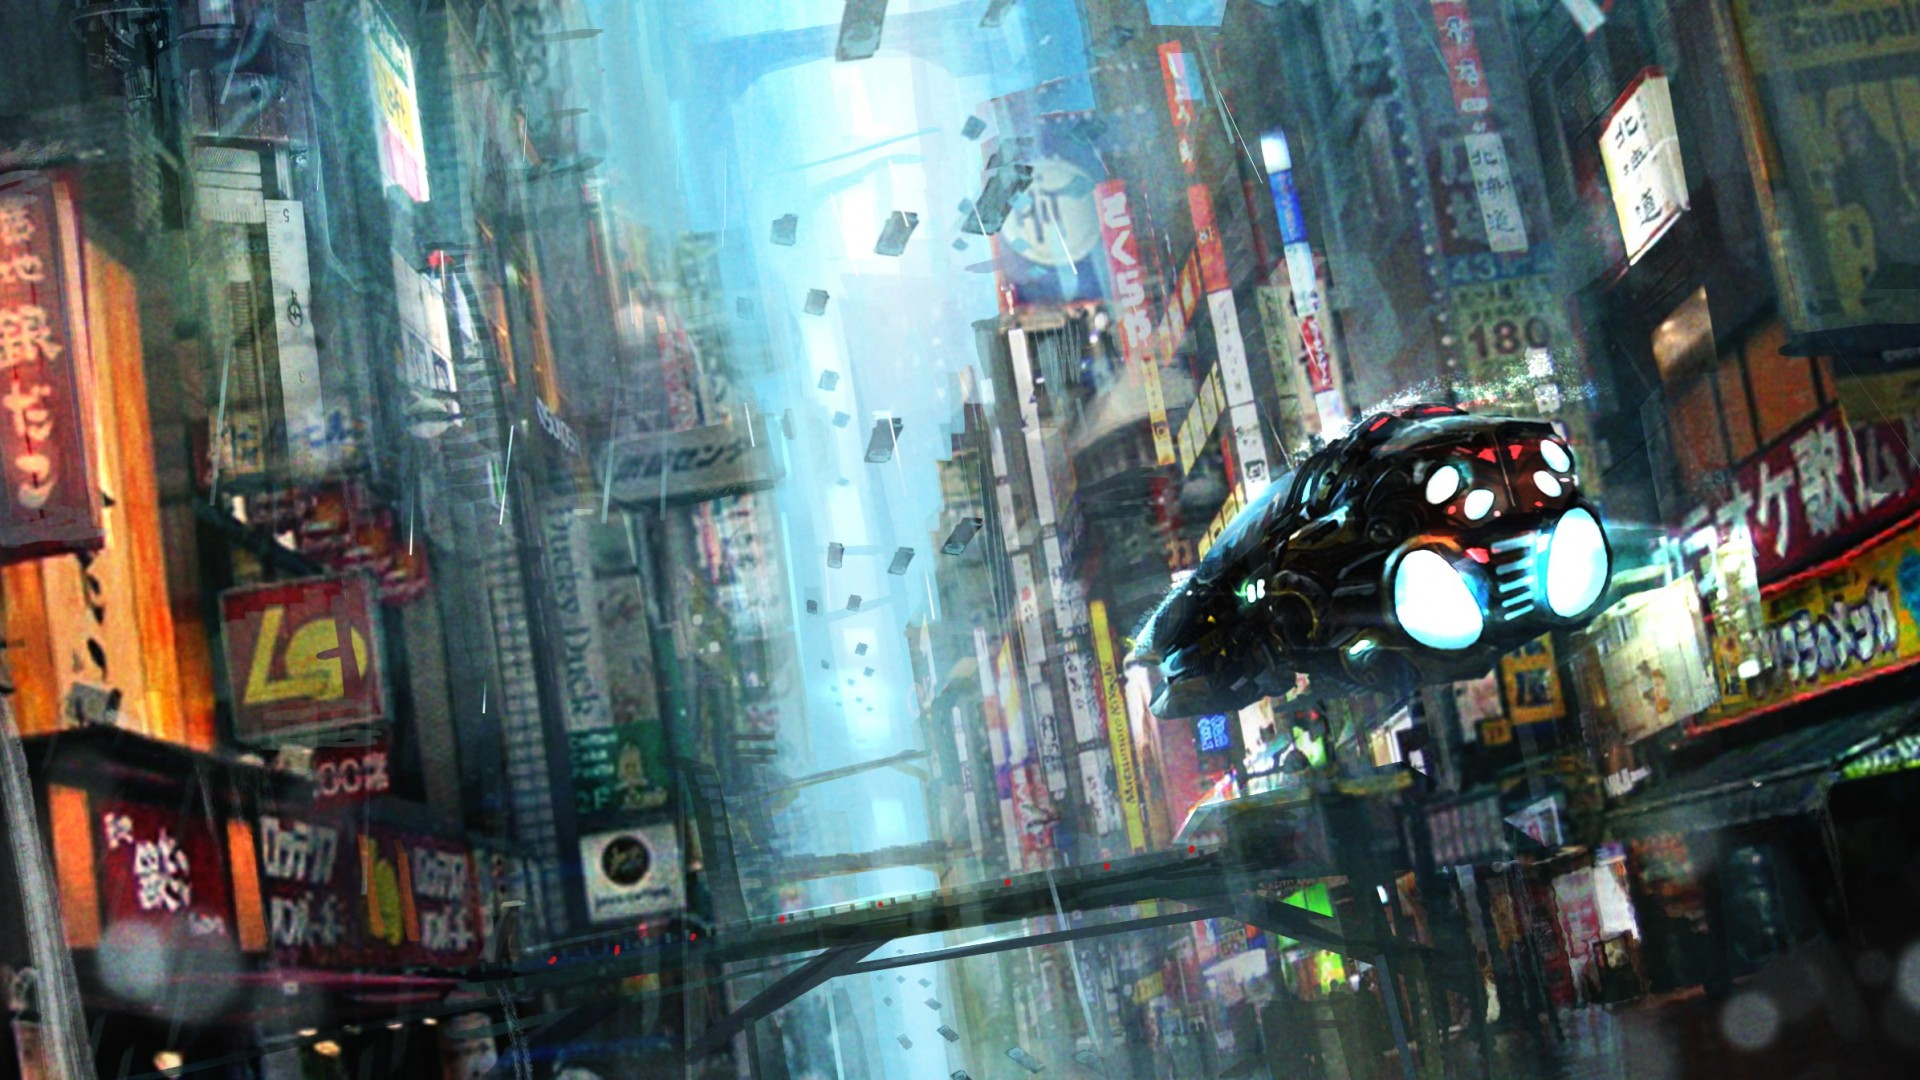 BLADE RUNNER drama sci Fi thriller action city spaceship gs wallpaper 1920x1080